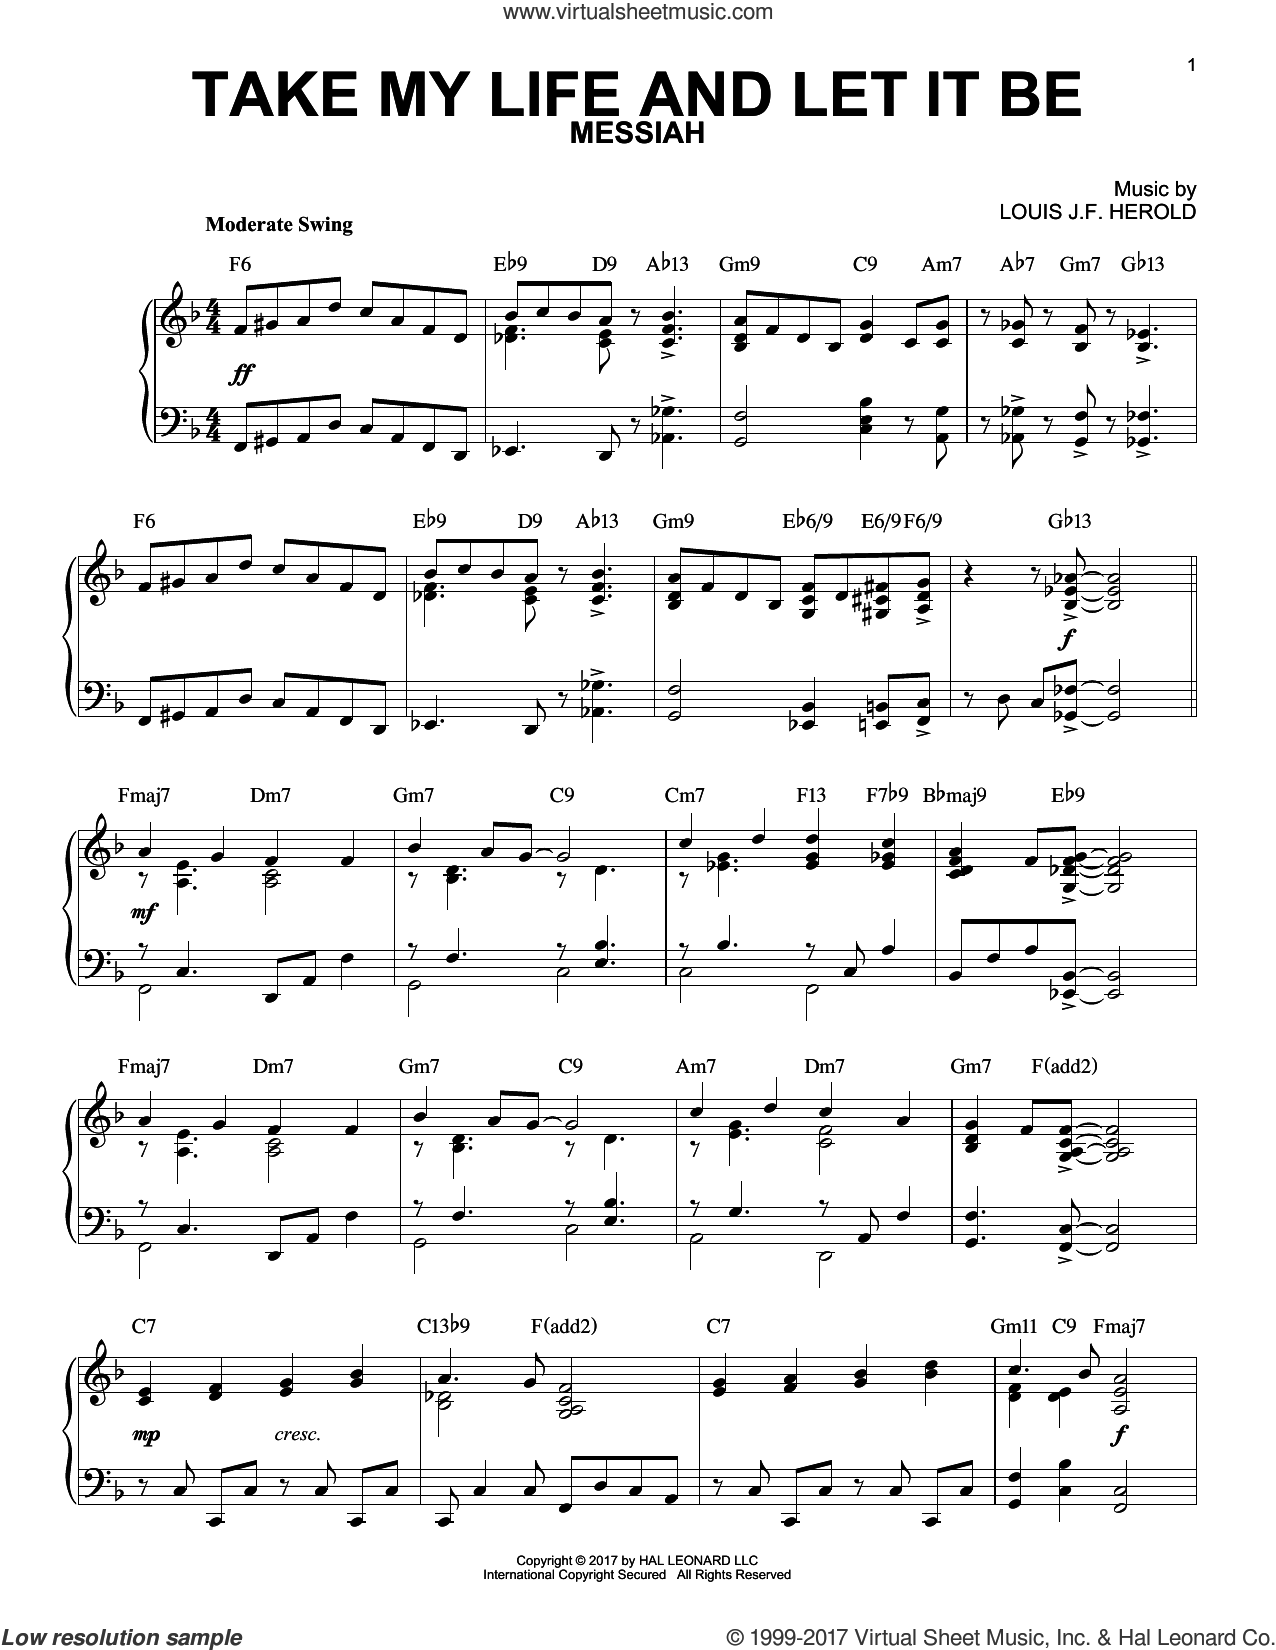 Take My Life And Let It Be sheet music for piano solo by George Kingsley, Frances R. Havergal and Louis J.F. Herold, intermediate skill level